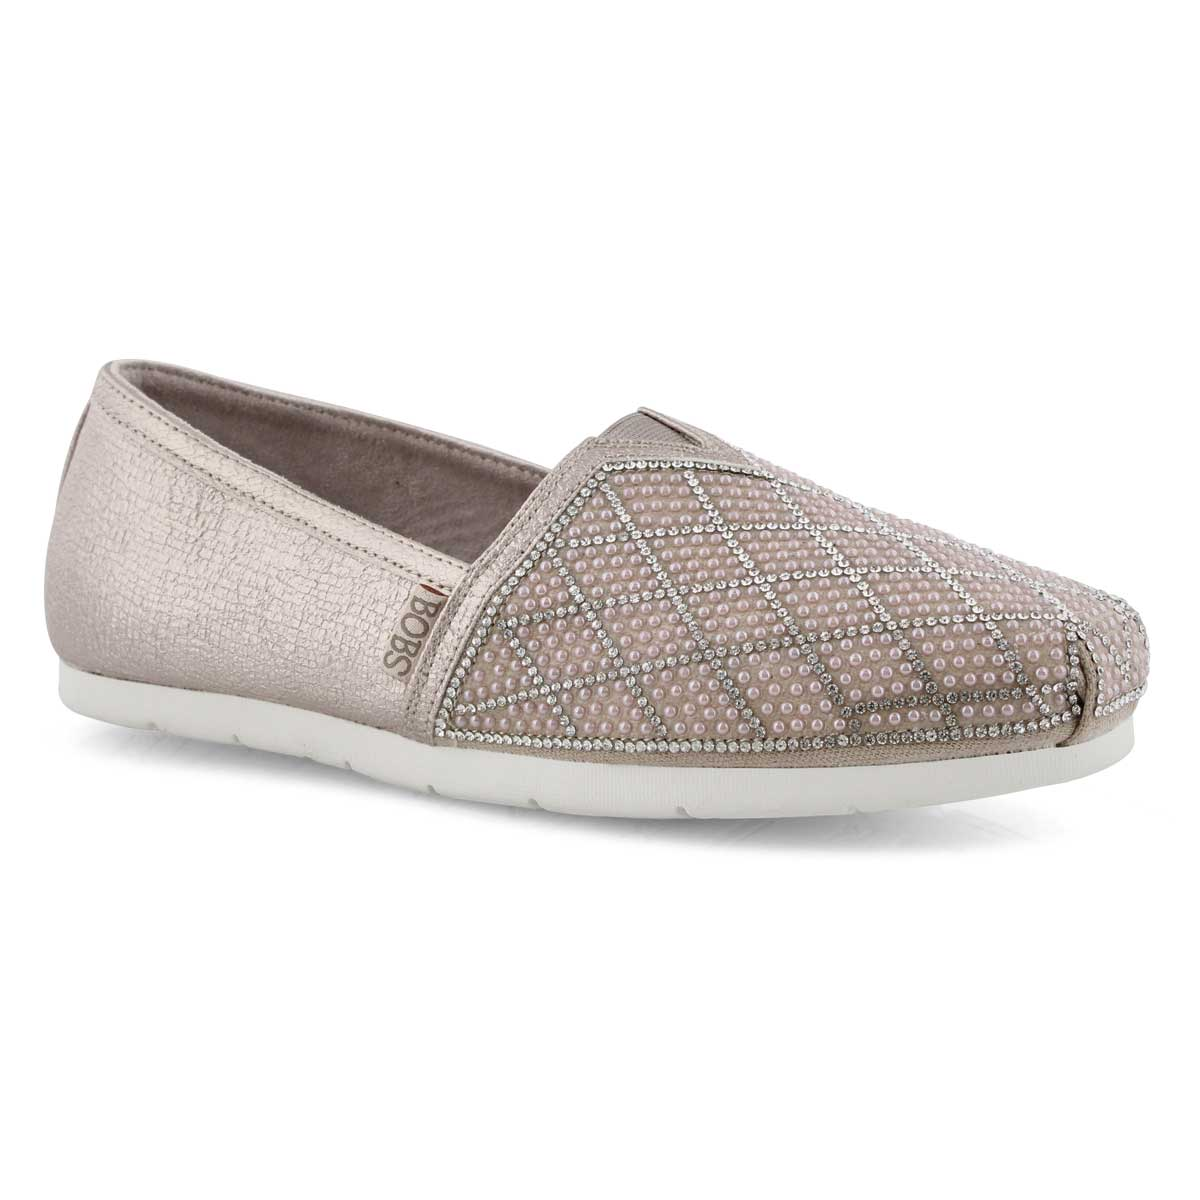 Lds Bobs Luxe Elite rose gld slipon shoe